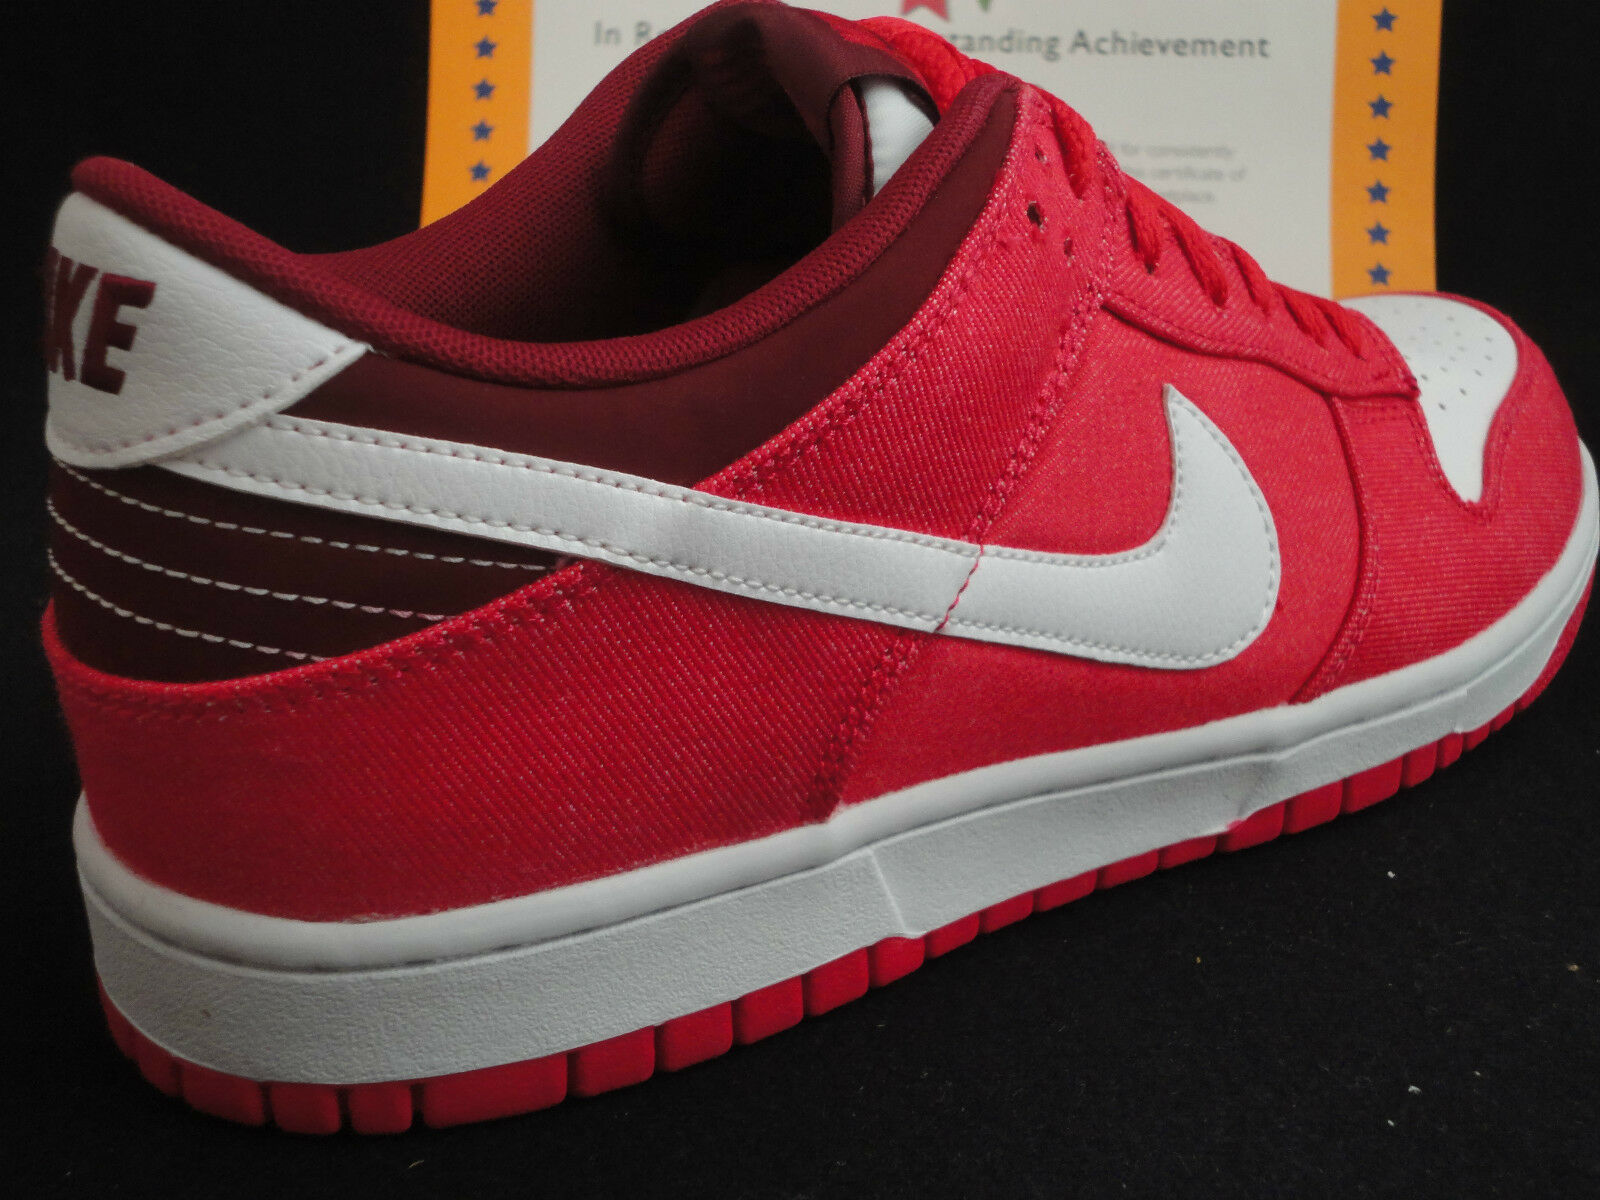 Nike Dunk Low, Denim / Leather, 2012, Hyper Red / White, 318019 604, Sz 12